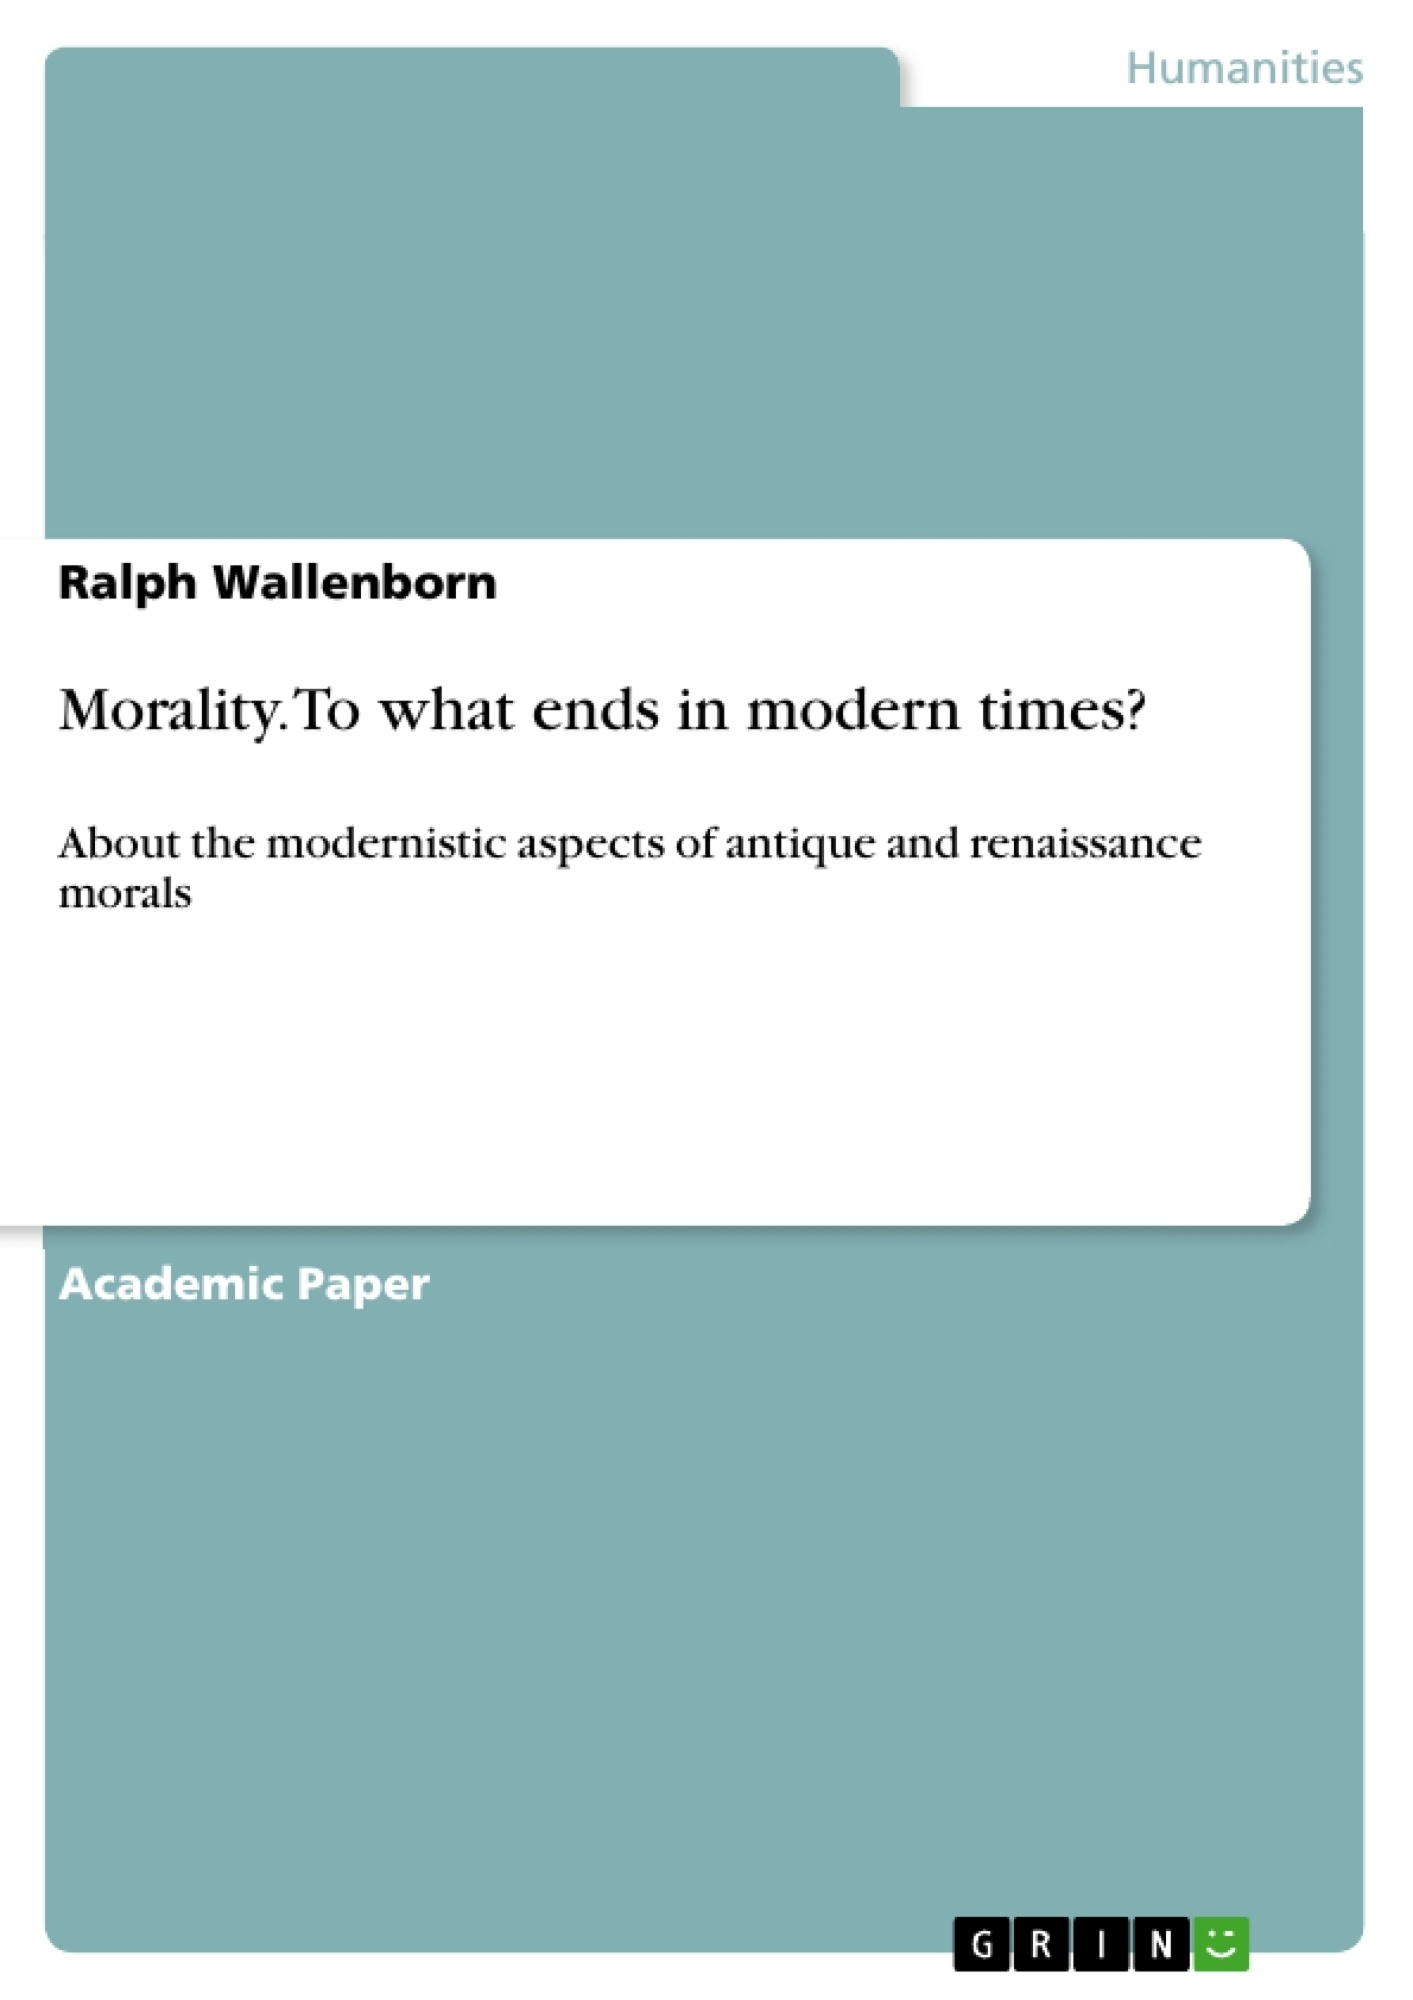 Title: Morality. To what ends in modern times?